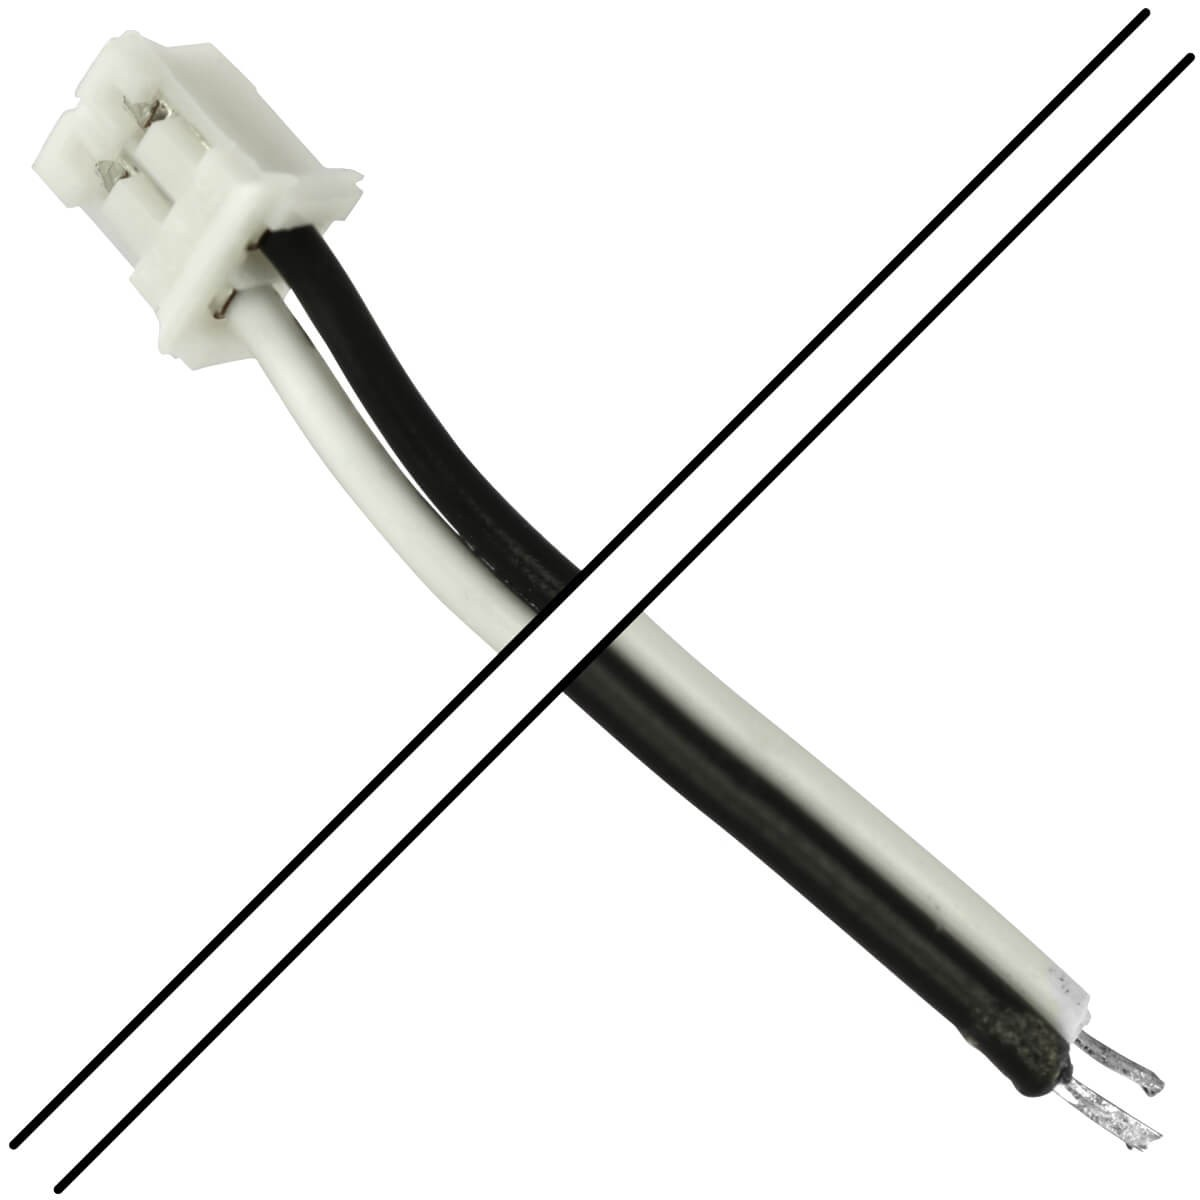 PH 2.0mm Female 1 Connector to Bare wires 2 Poles 15cm (Unit)